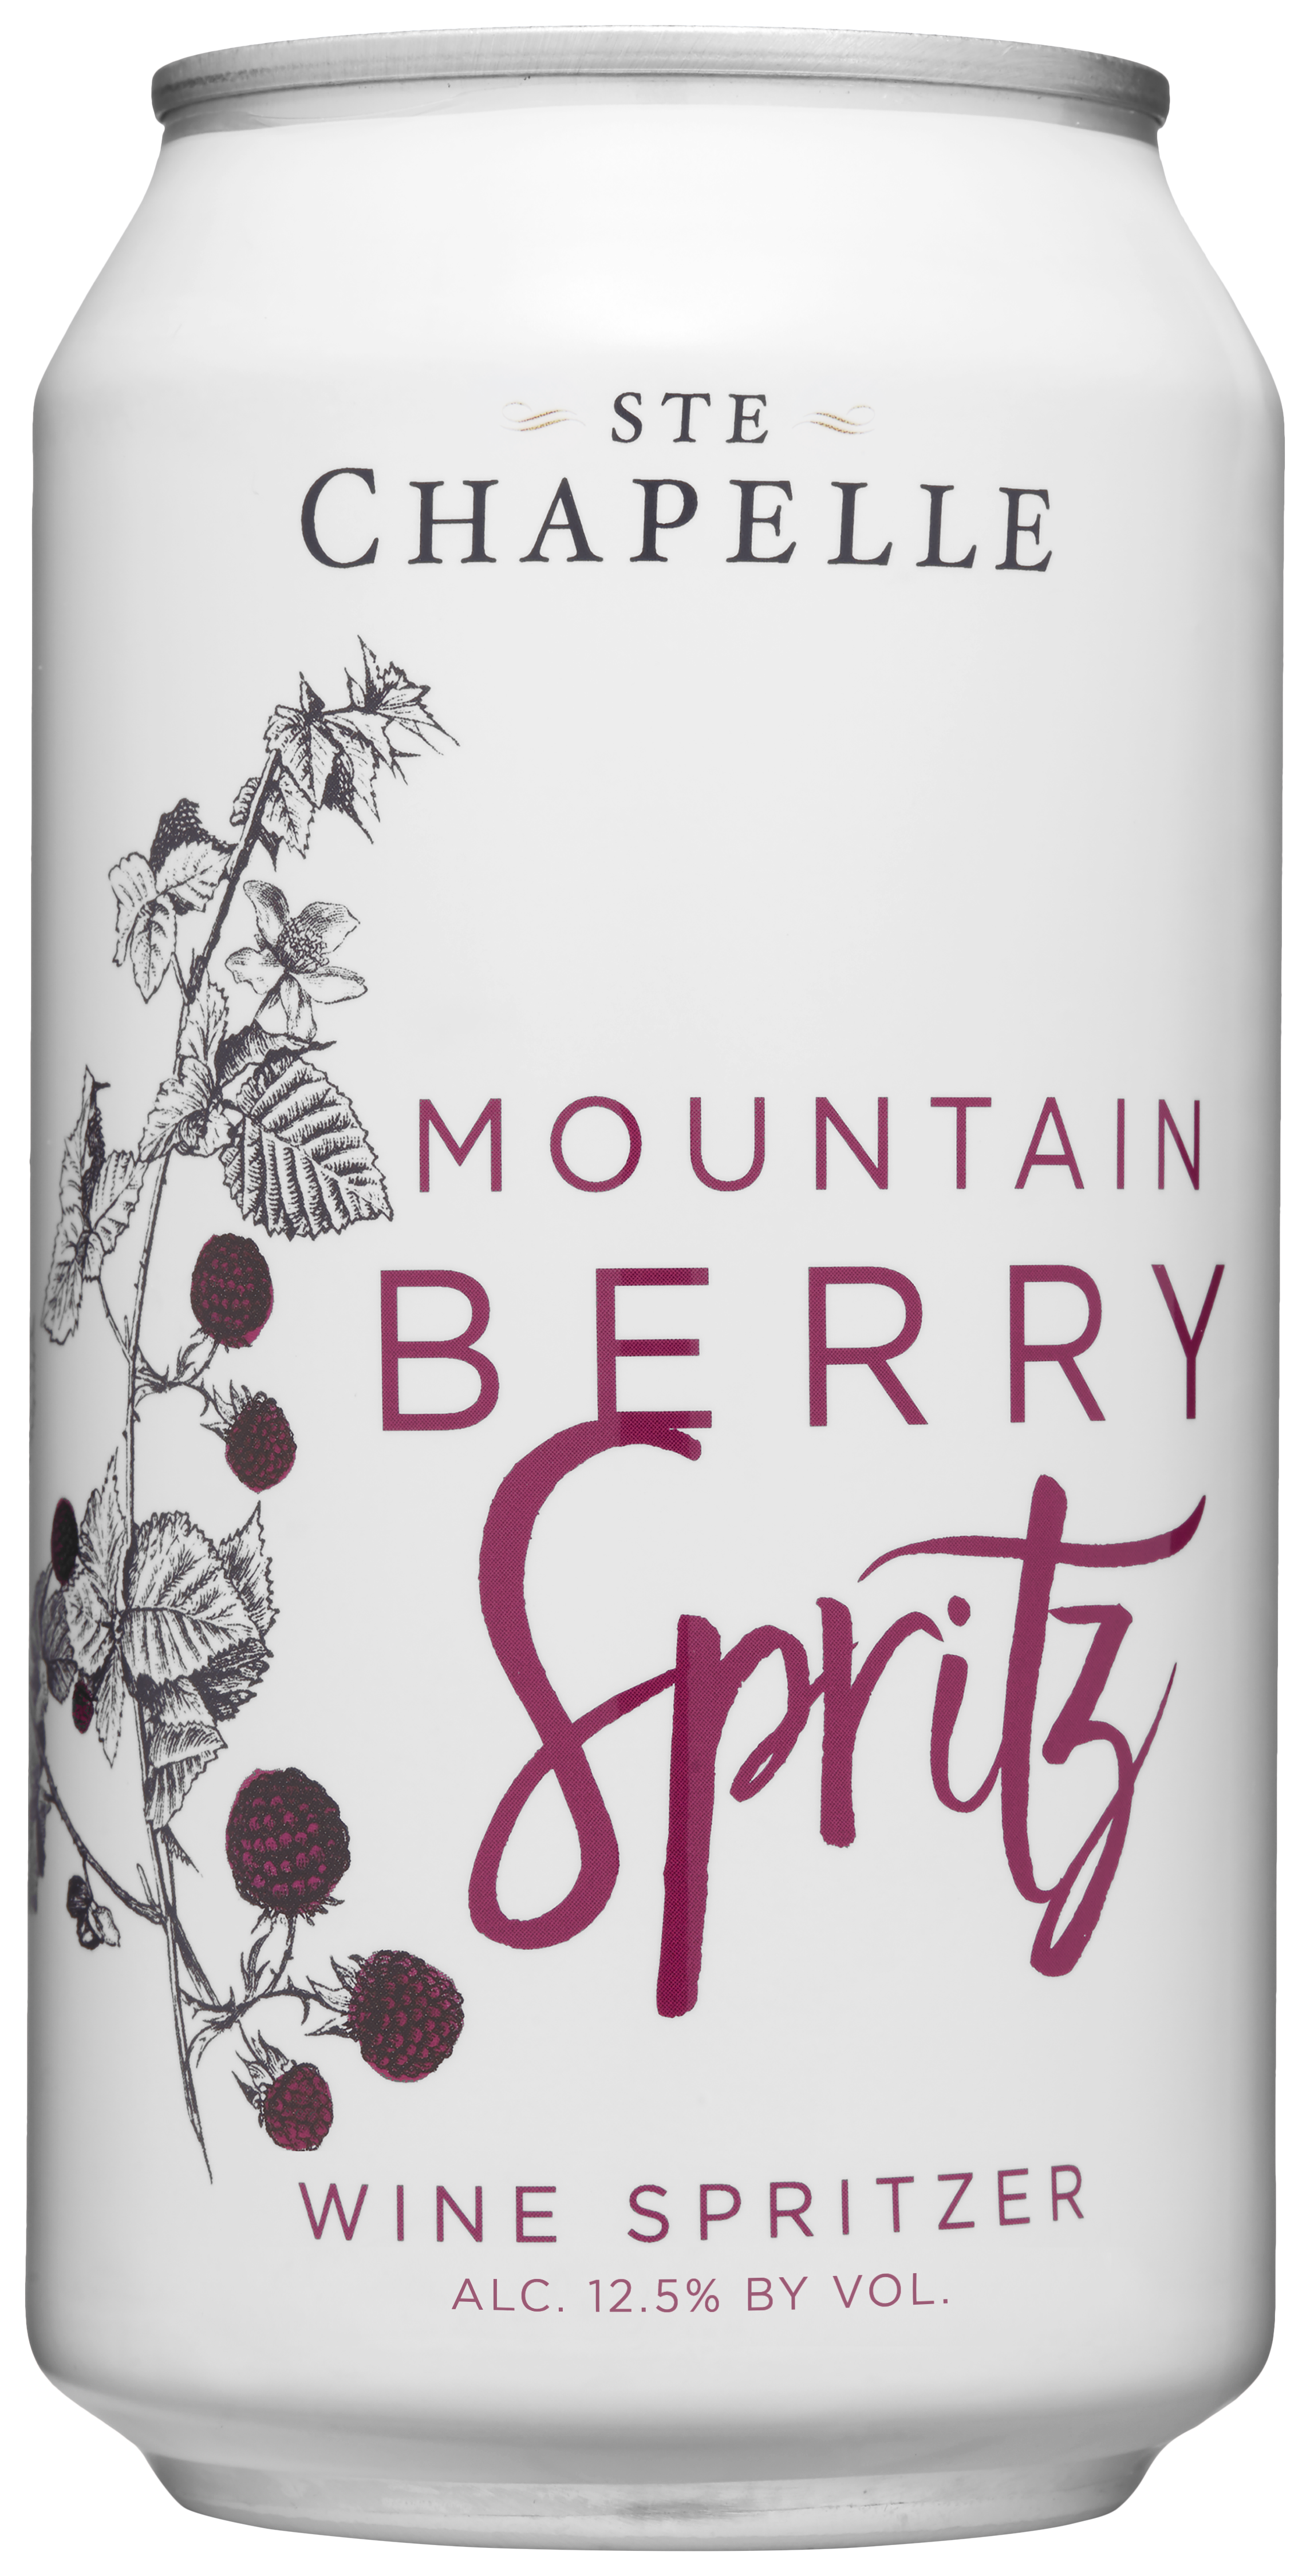 Precept Wine » Our Wines » Ste. Chapelle » Mountain Berry ...